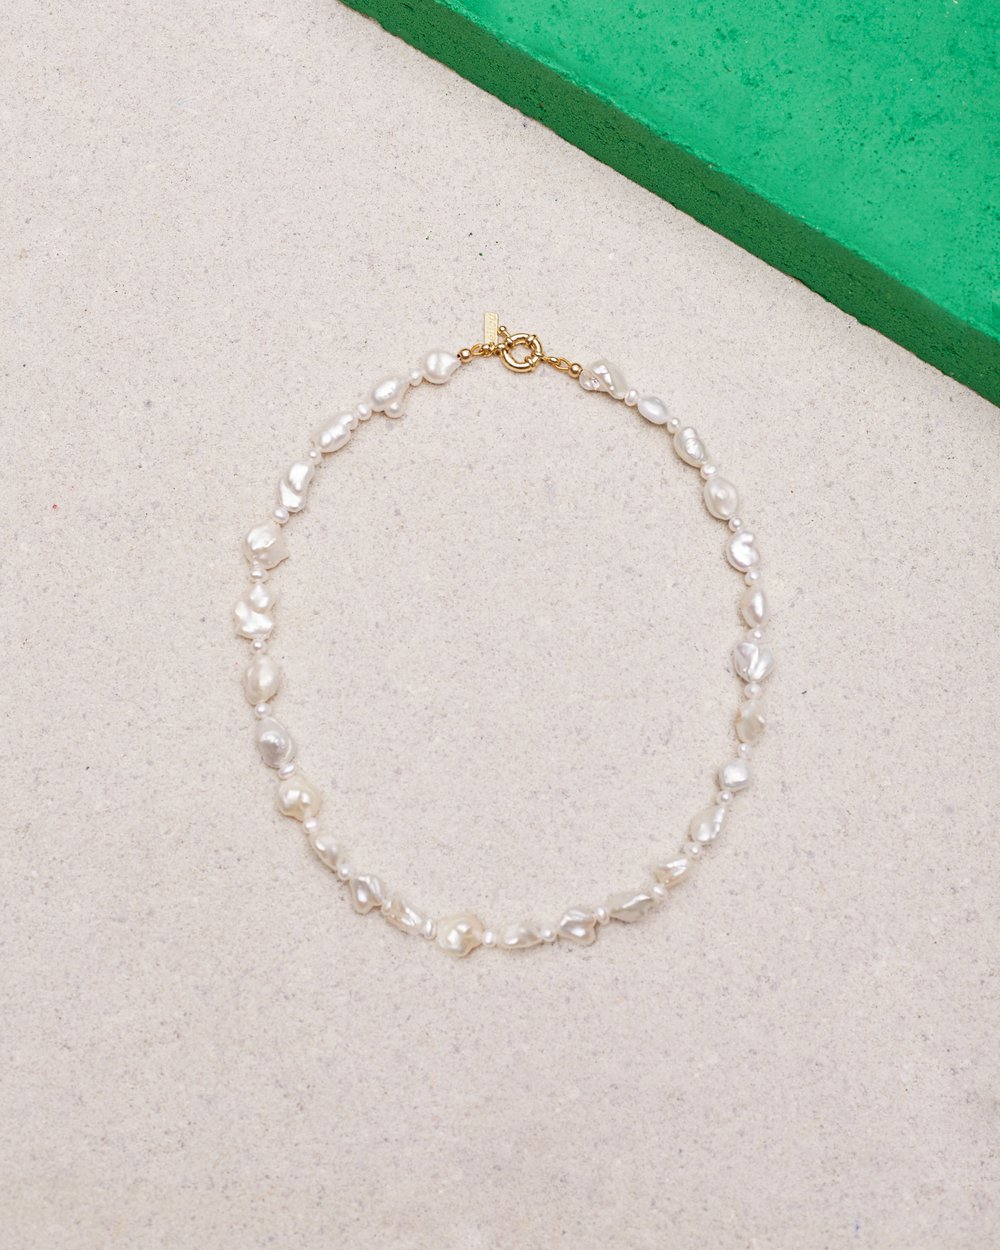 ALL THE FEELS PEARL NECKLACE by éliou, available on eliou-eliou.com for $215 Kendall Jenner Jewellery Exact Product